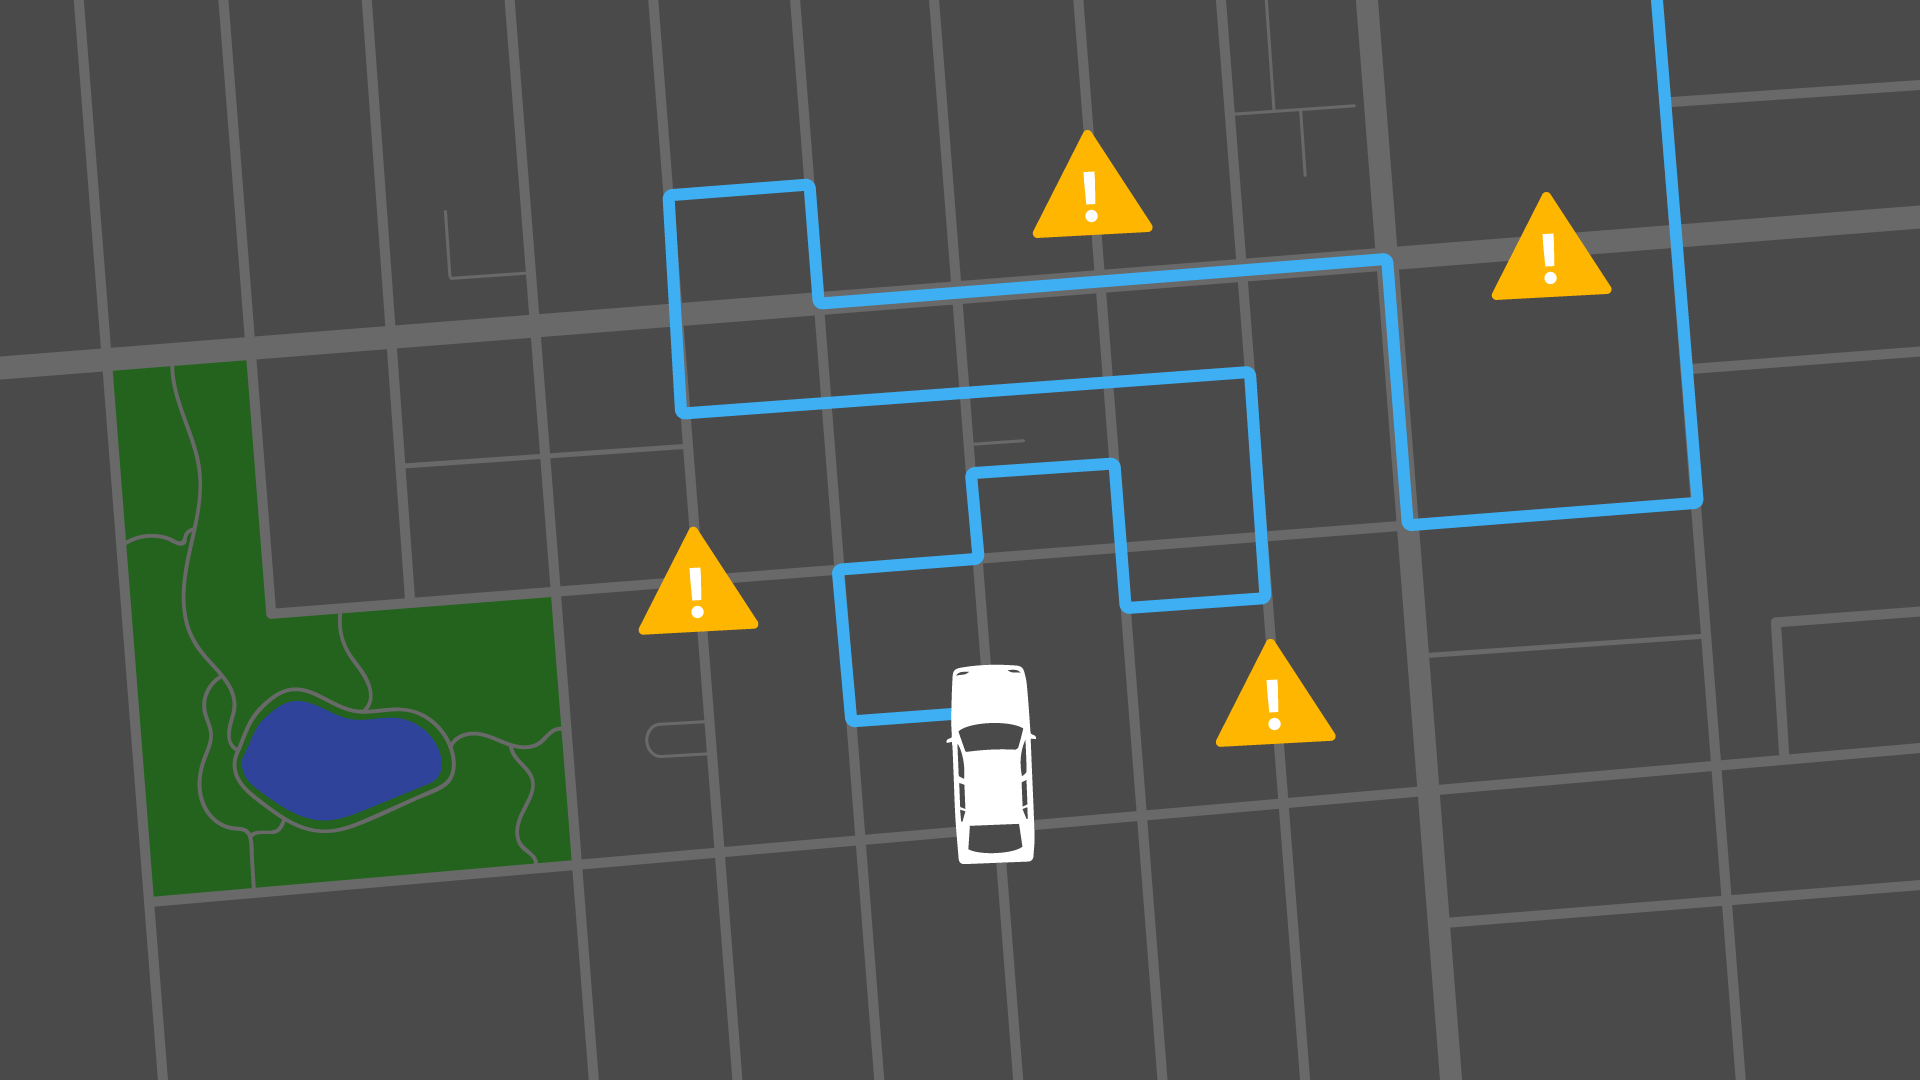 Uber route map with hazard signs placed on a twisty route